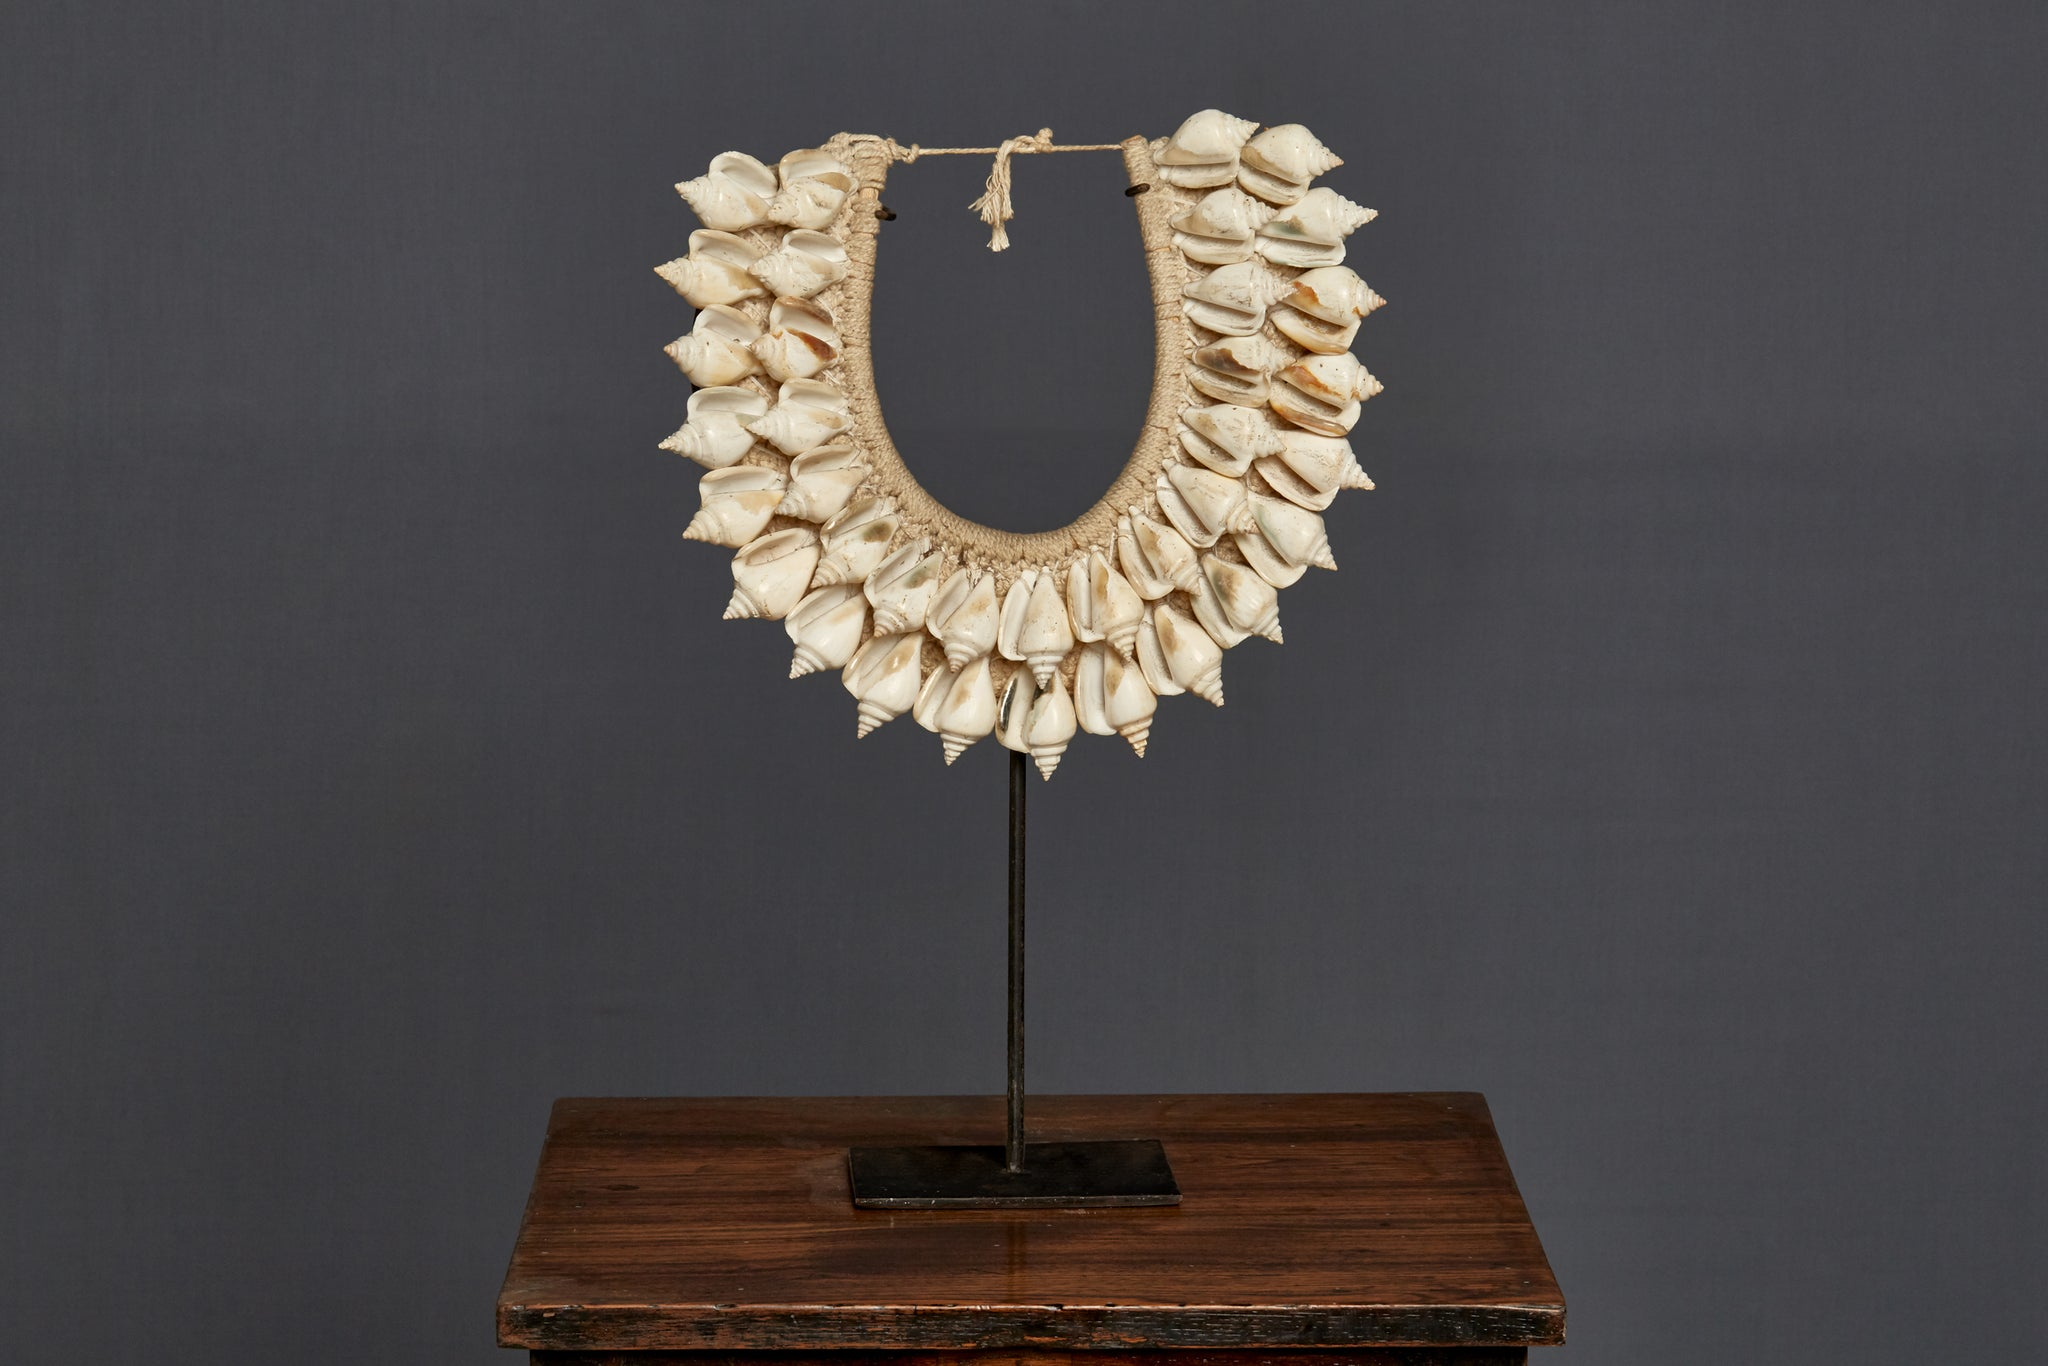 Mounted Ceremonial White Welk Necklace from Papua